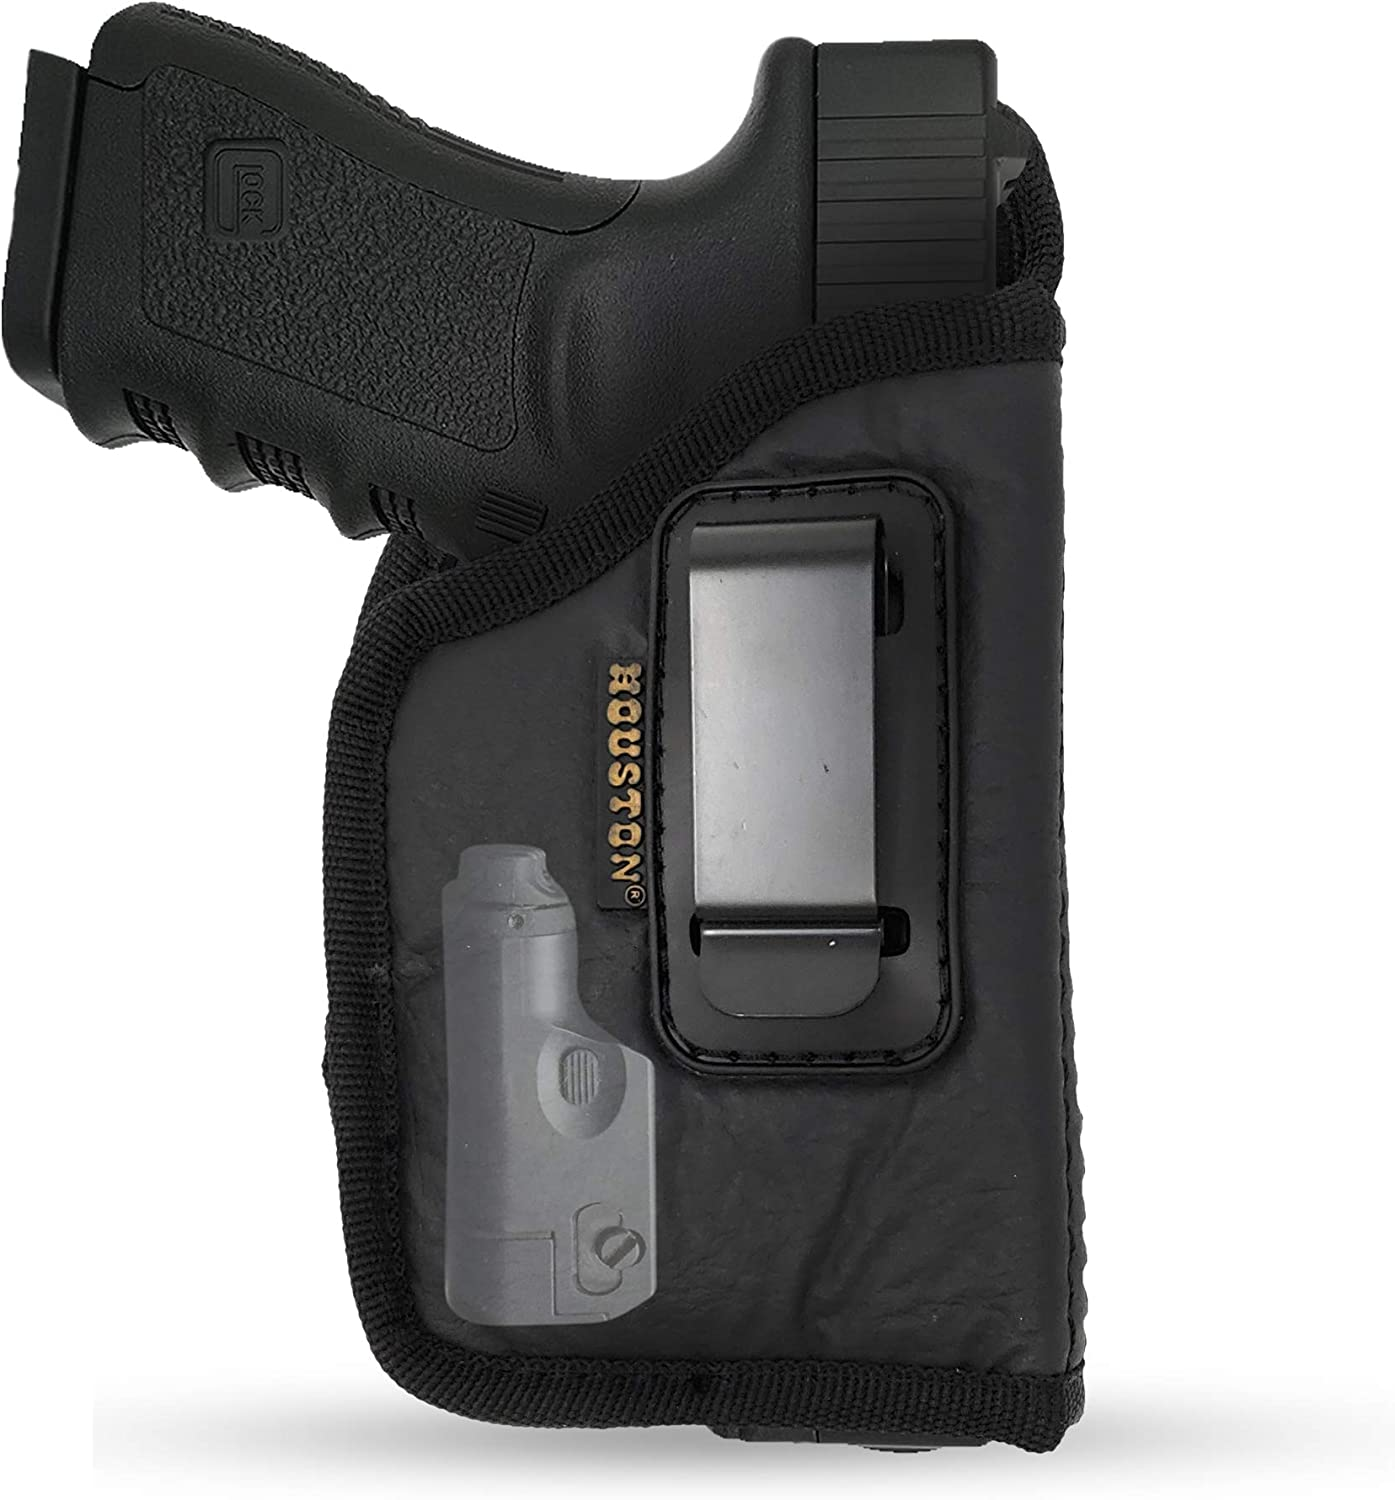 IWB Gun Holster by Houston - ECO Leather Concealment Inside The Waistband